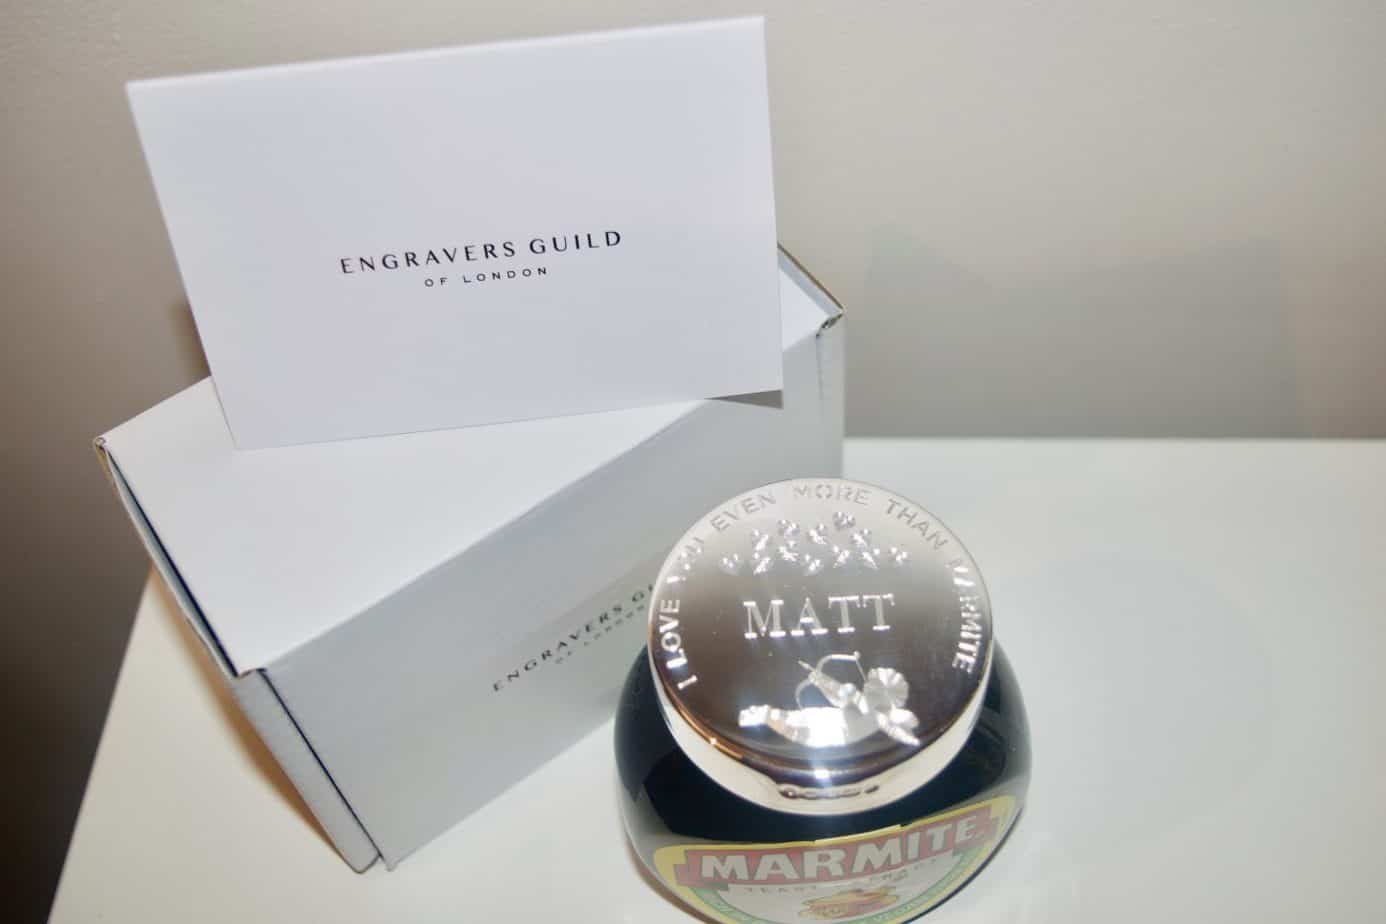 Engraved Silver Marmite lid with the box from Engraved Guilds